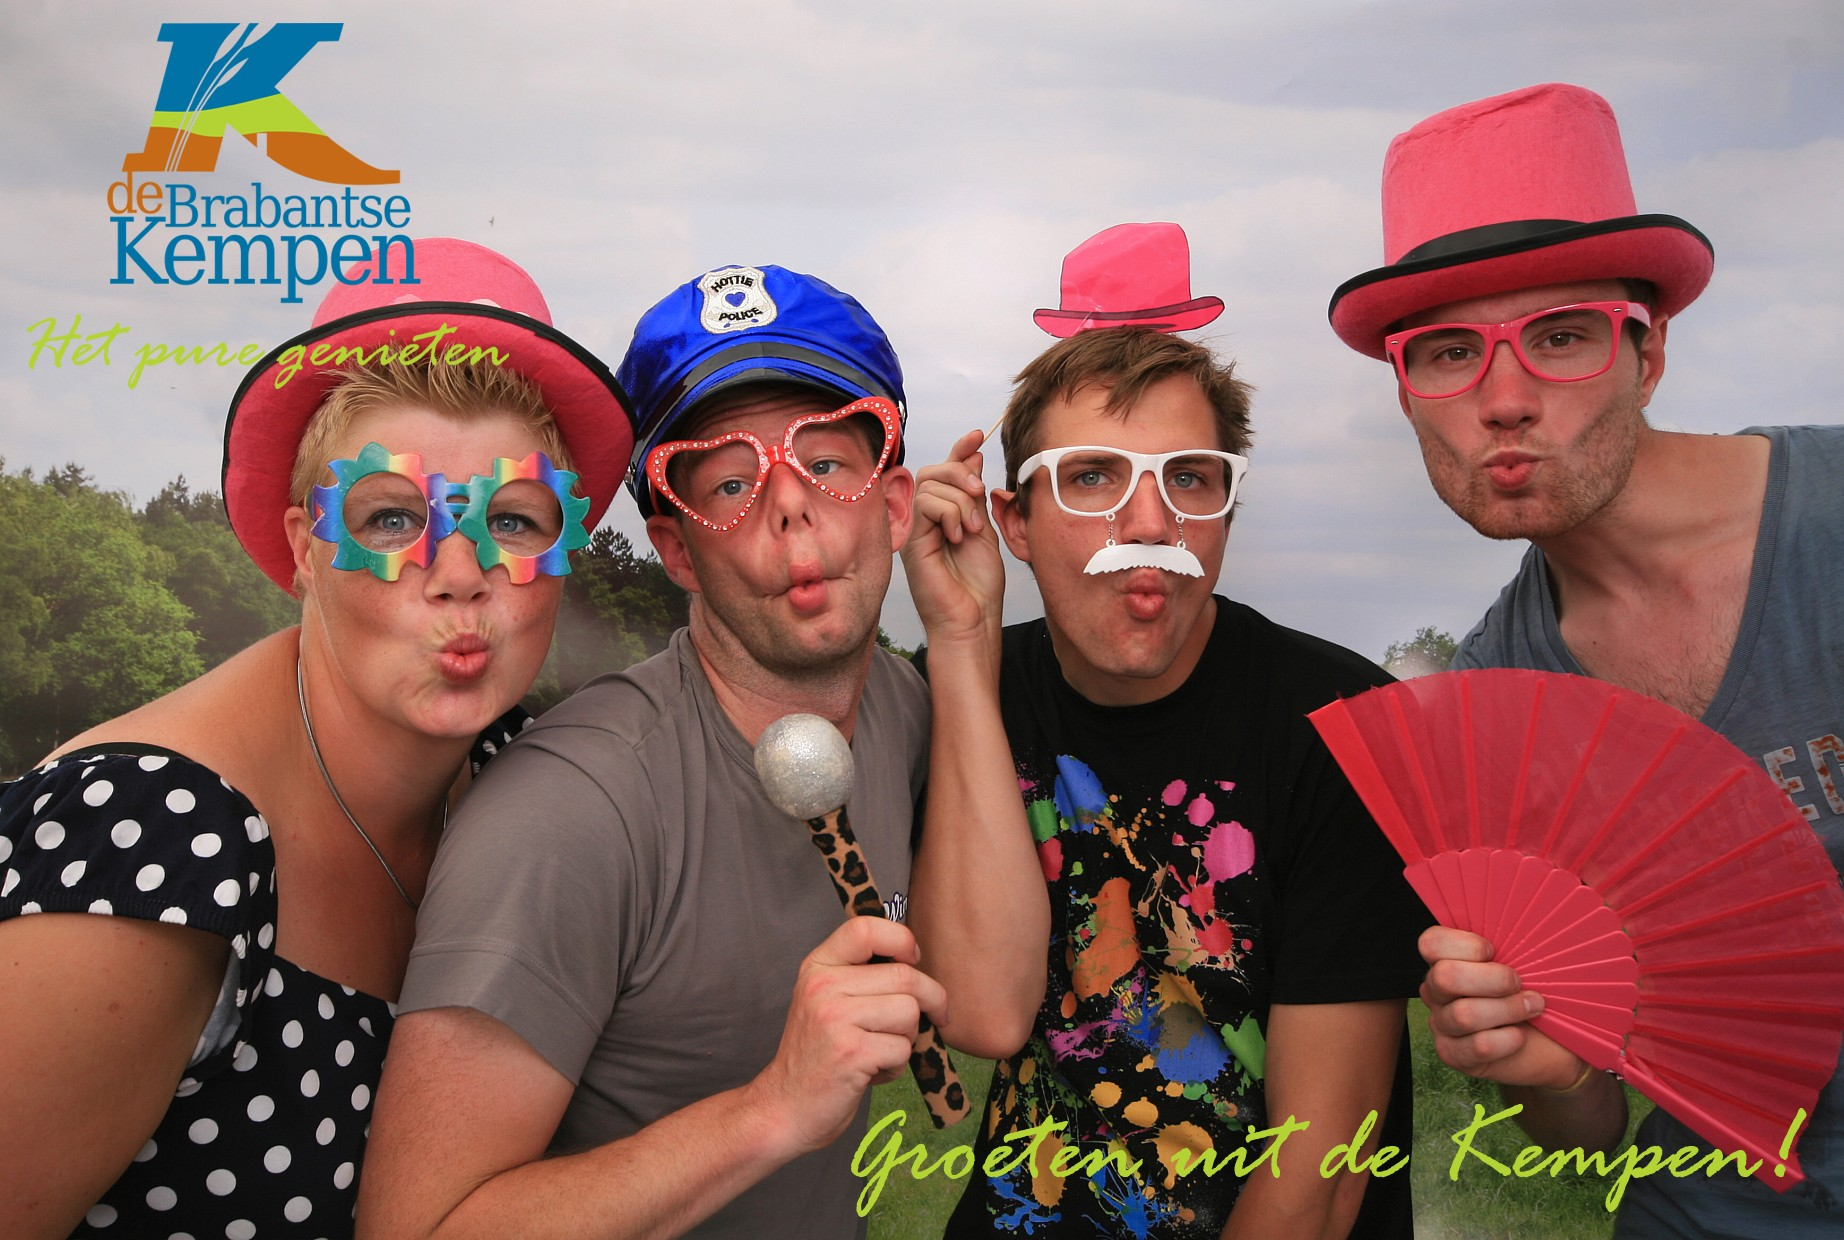 Photo booth festival